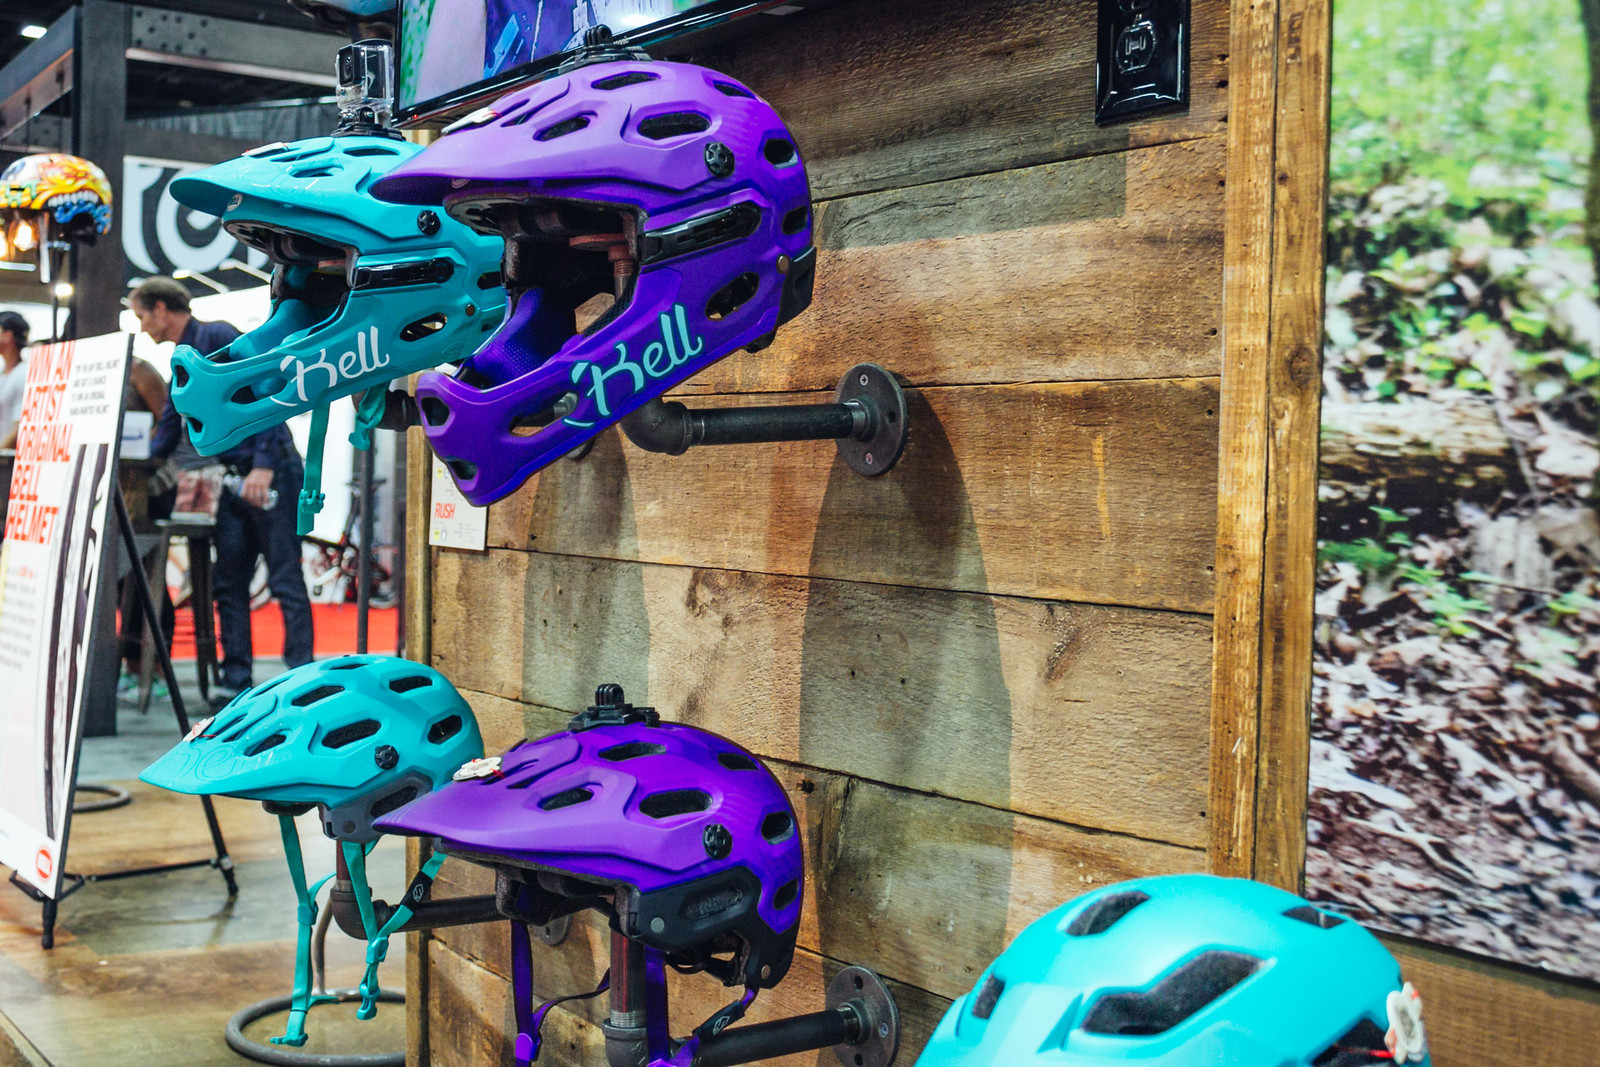 2017 Bell Joy Ride Women's Collection Super 3 and Super 3R Helmets - INTERBIKE - 2017 Women's Mountain Bike Gear - Mountain Biking Pictures - Vital MTB